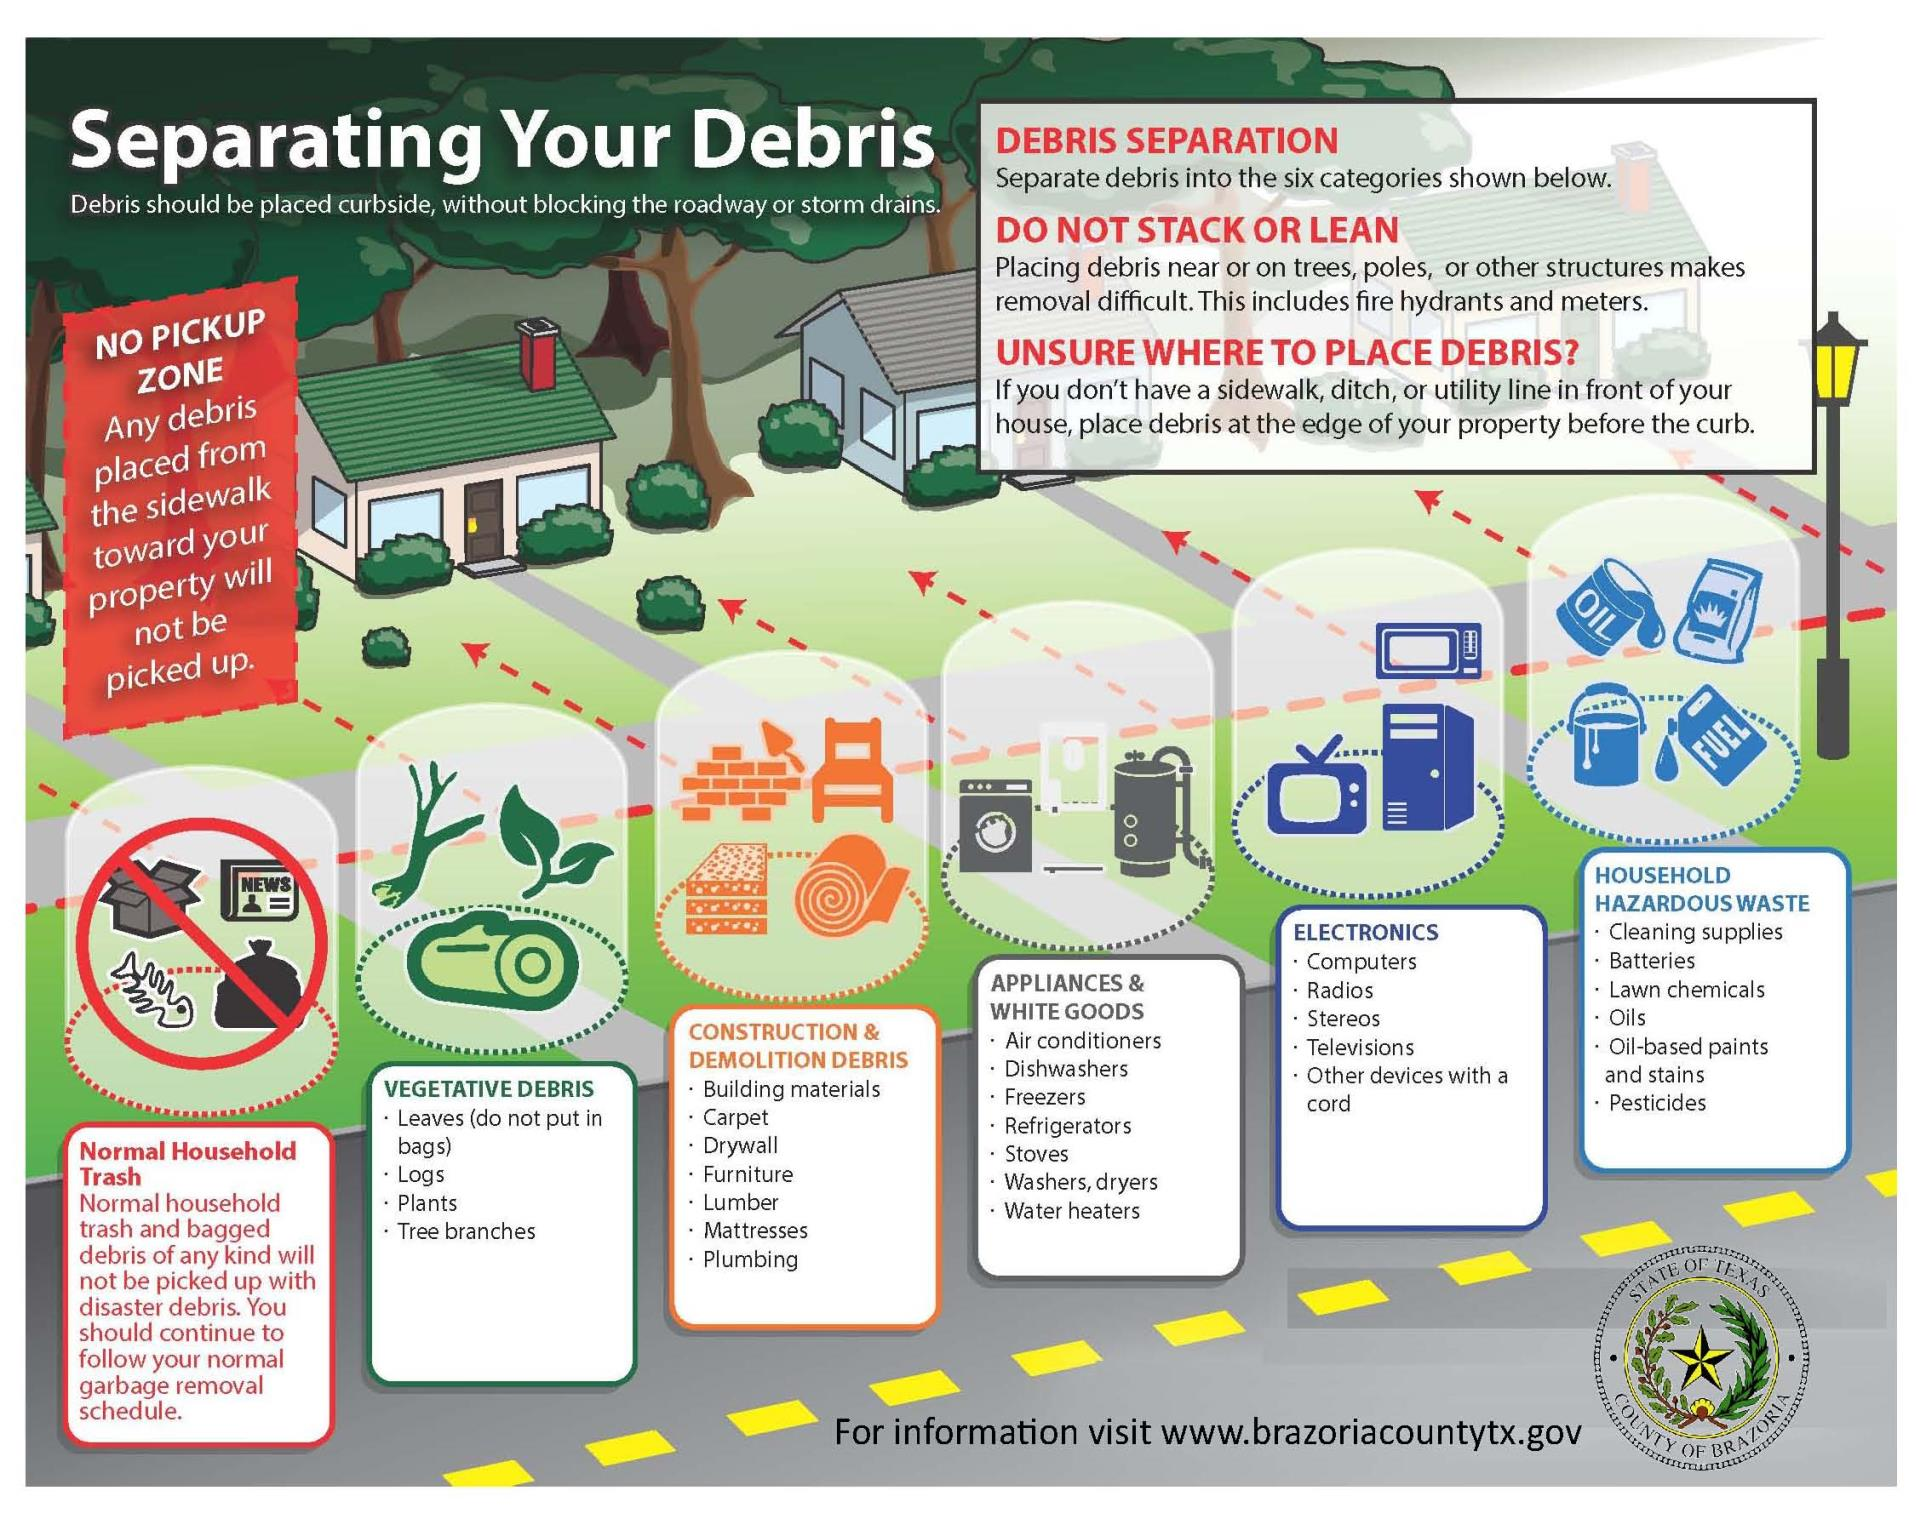 Separating Your Debris English